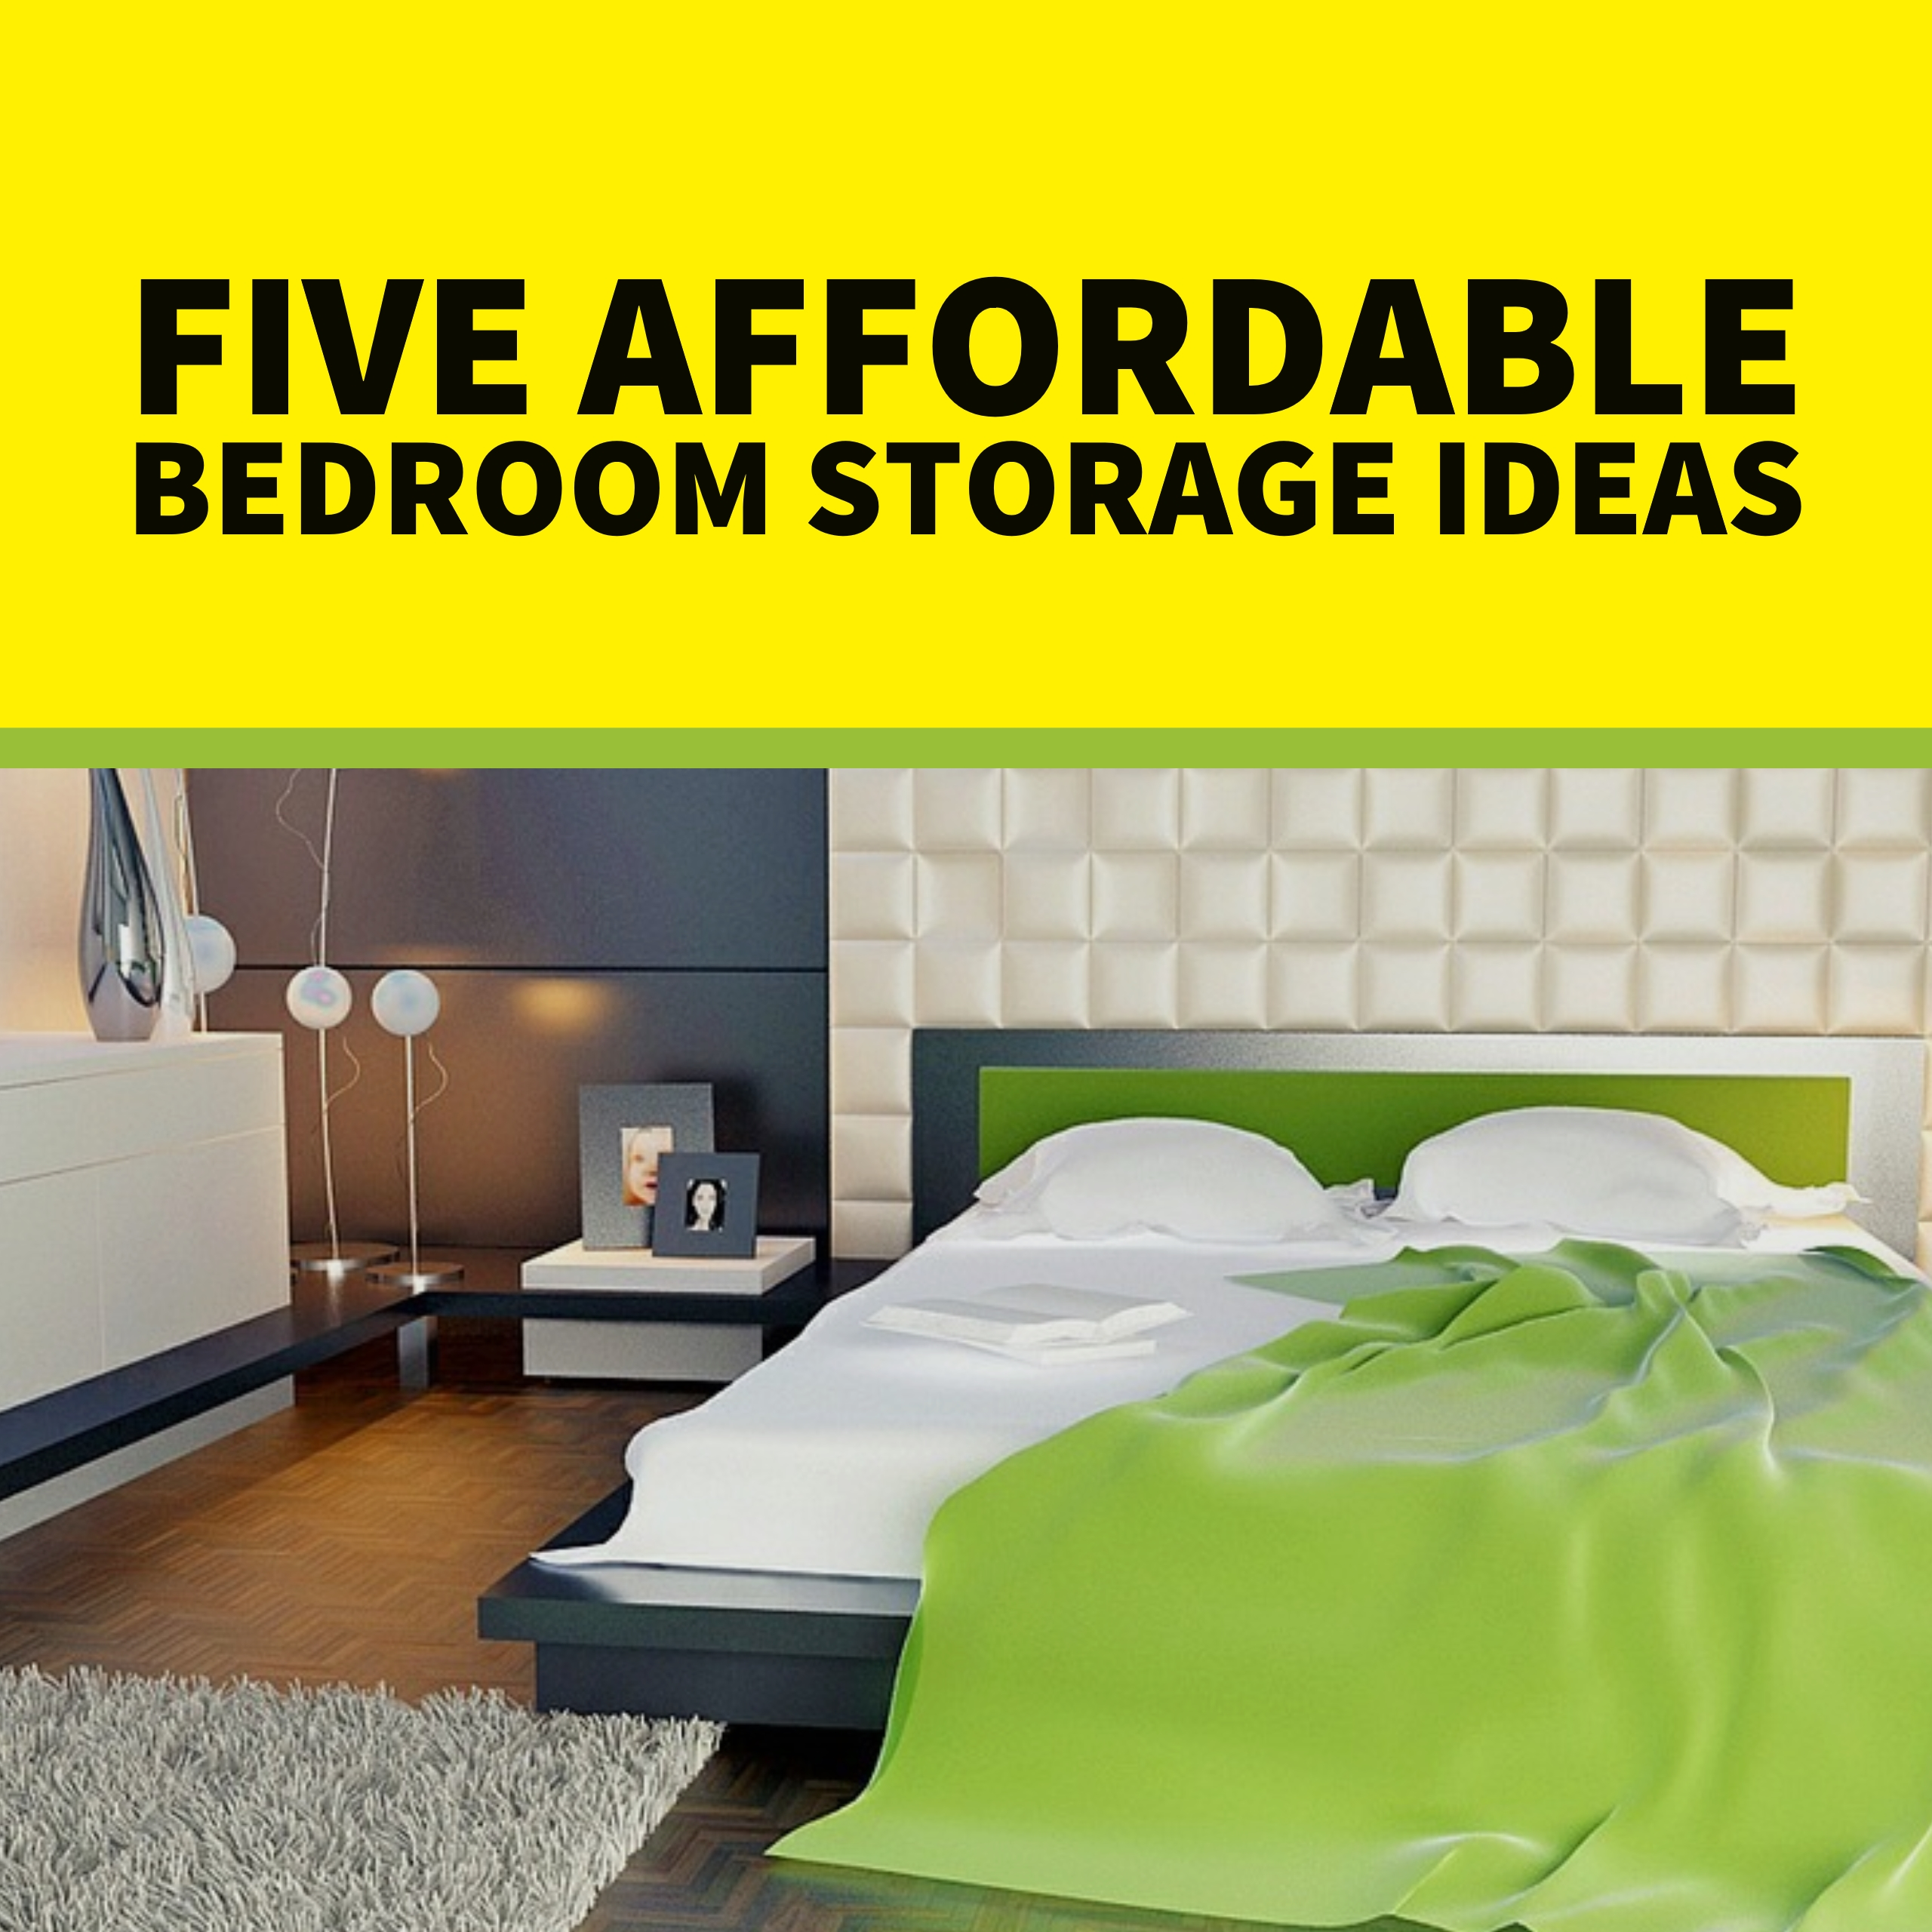 Affordable Bedroom Storage Ideas